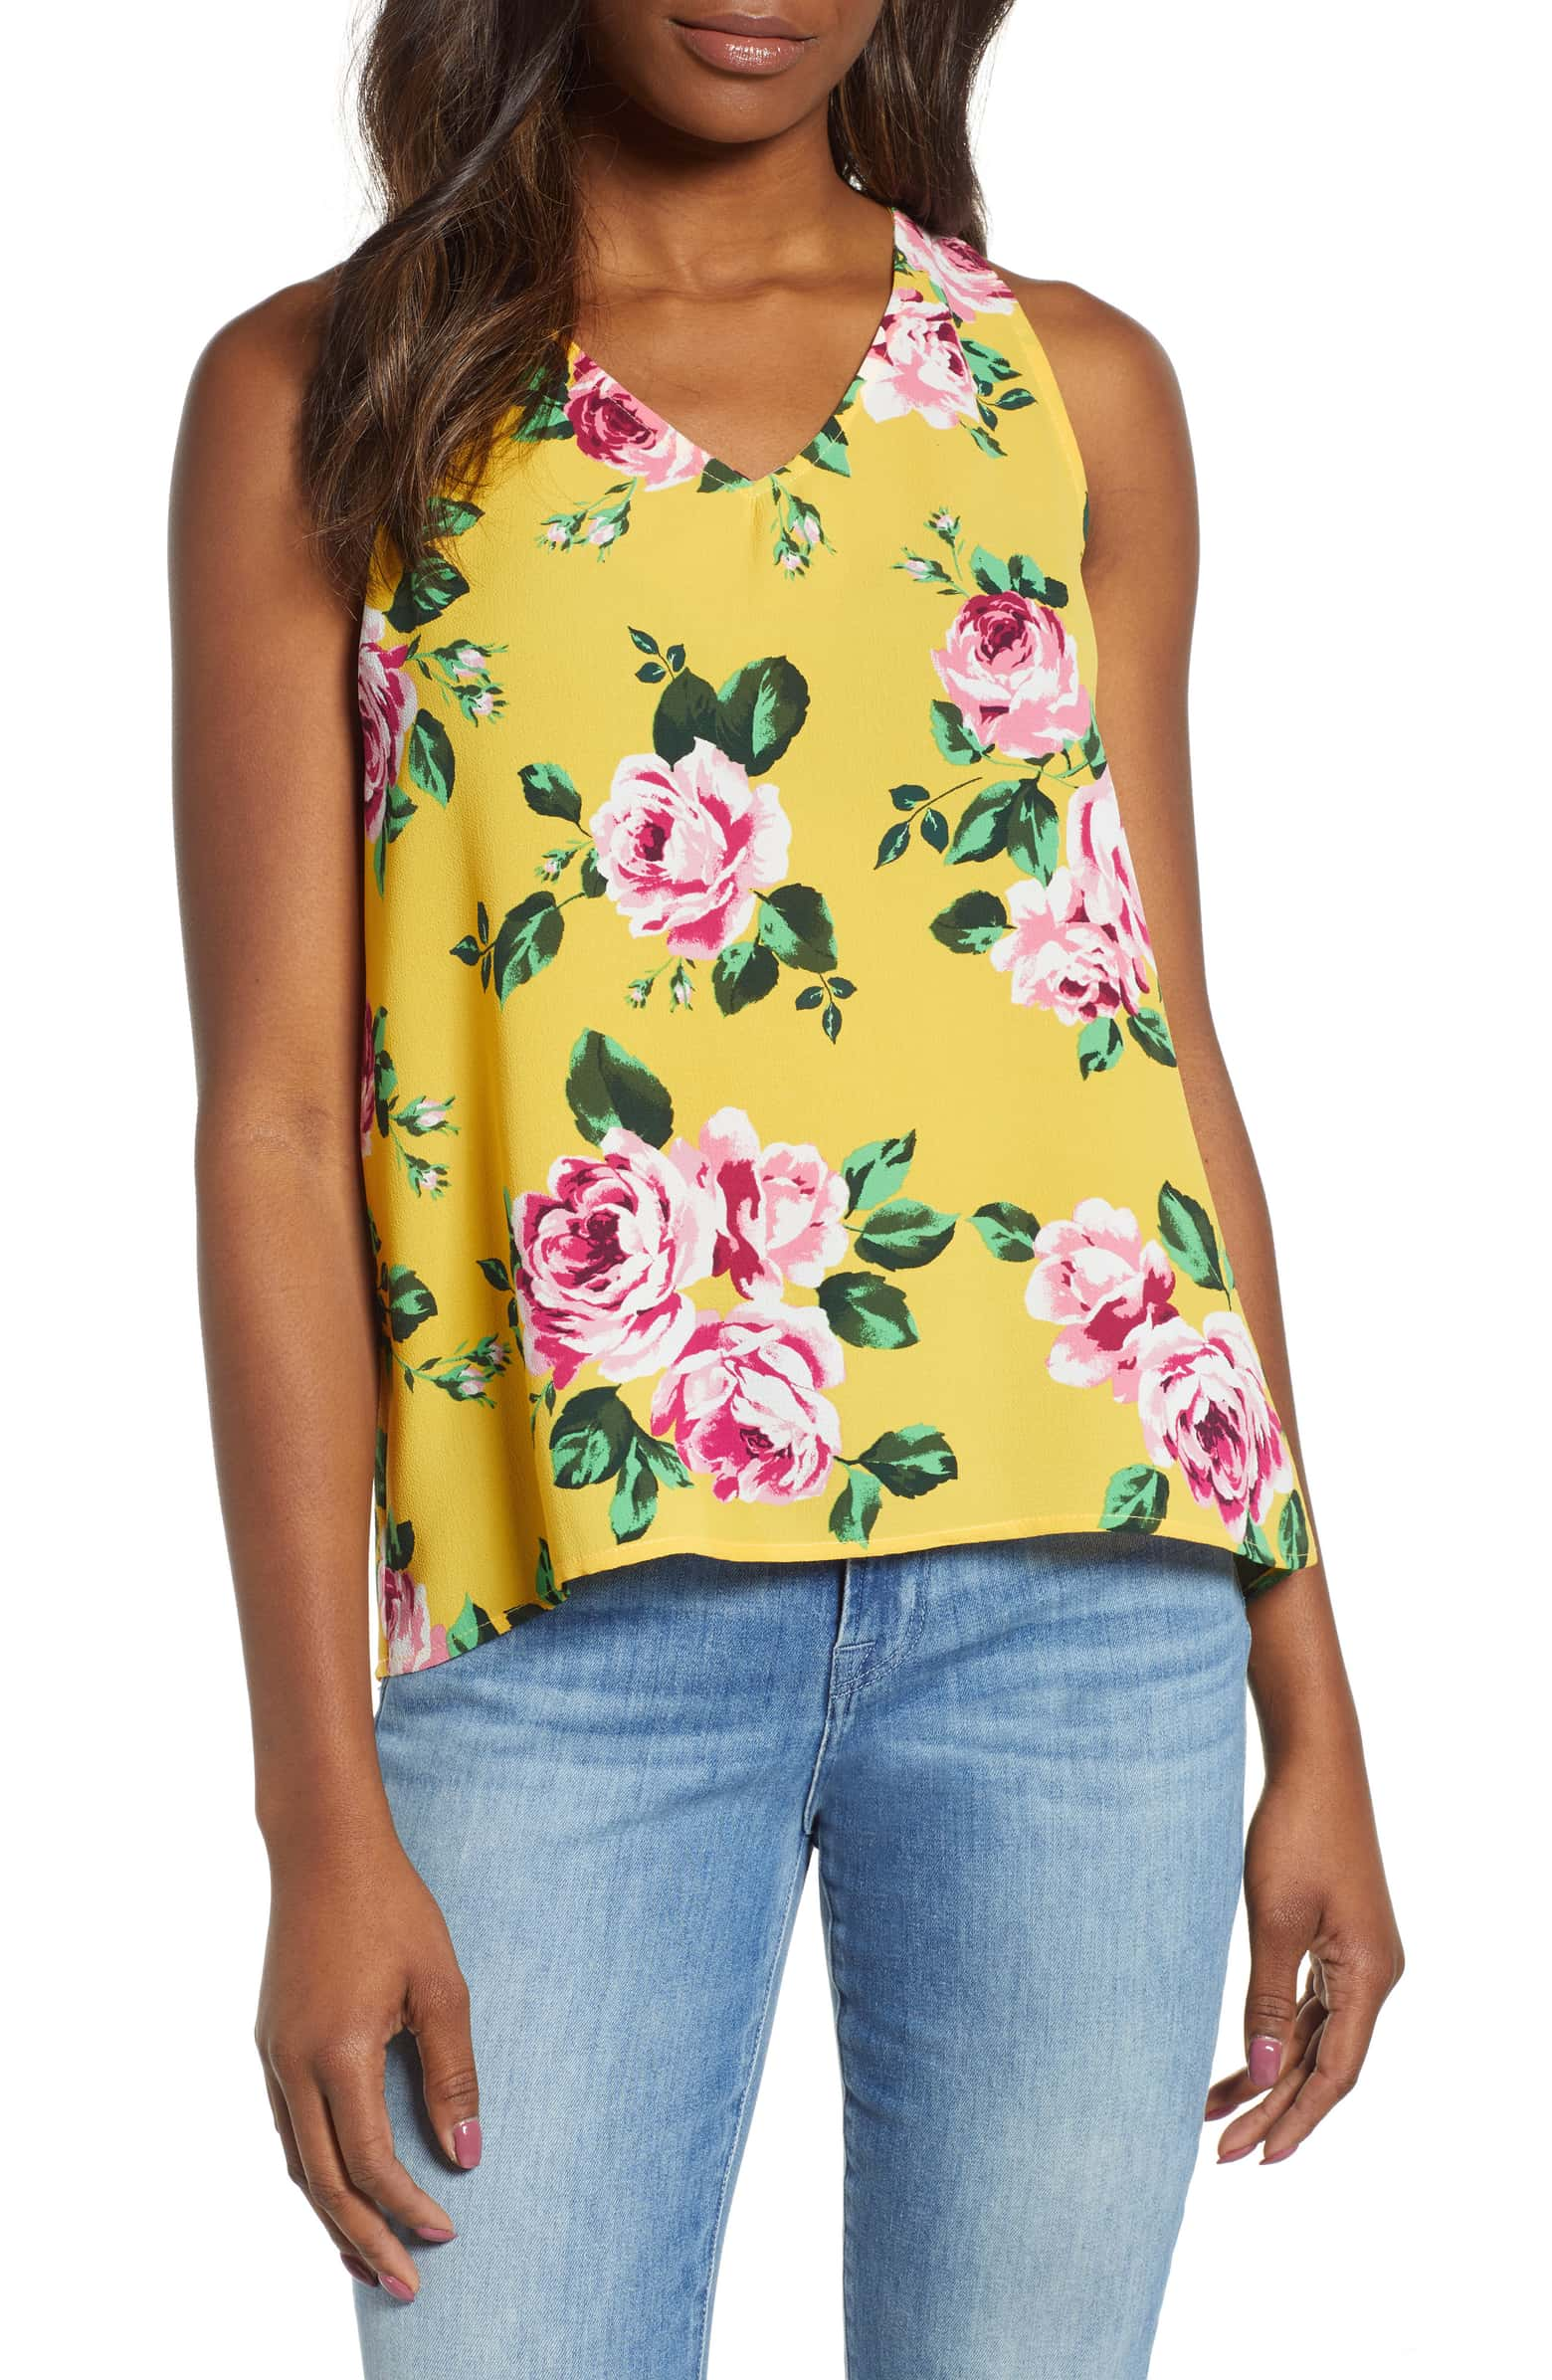 yellow floral shirt.jpg